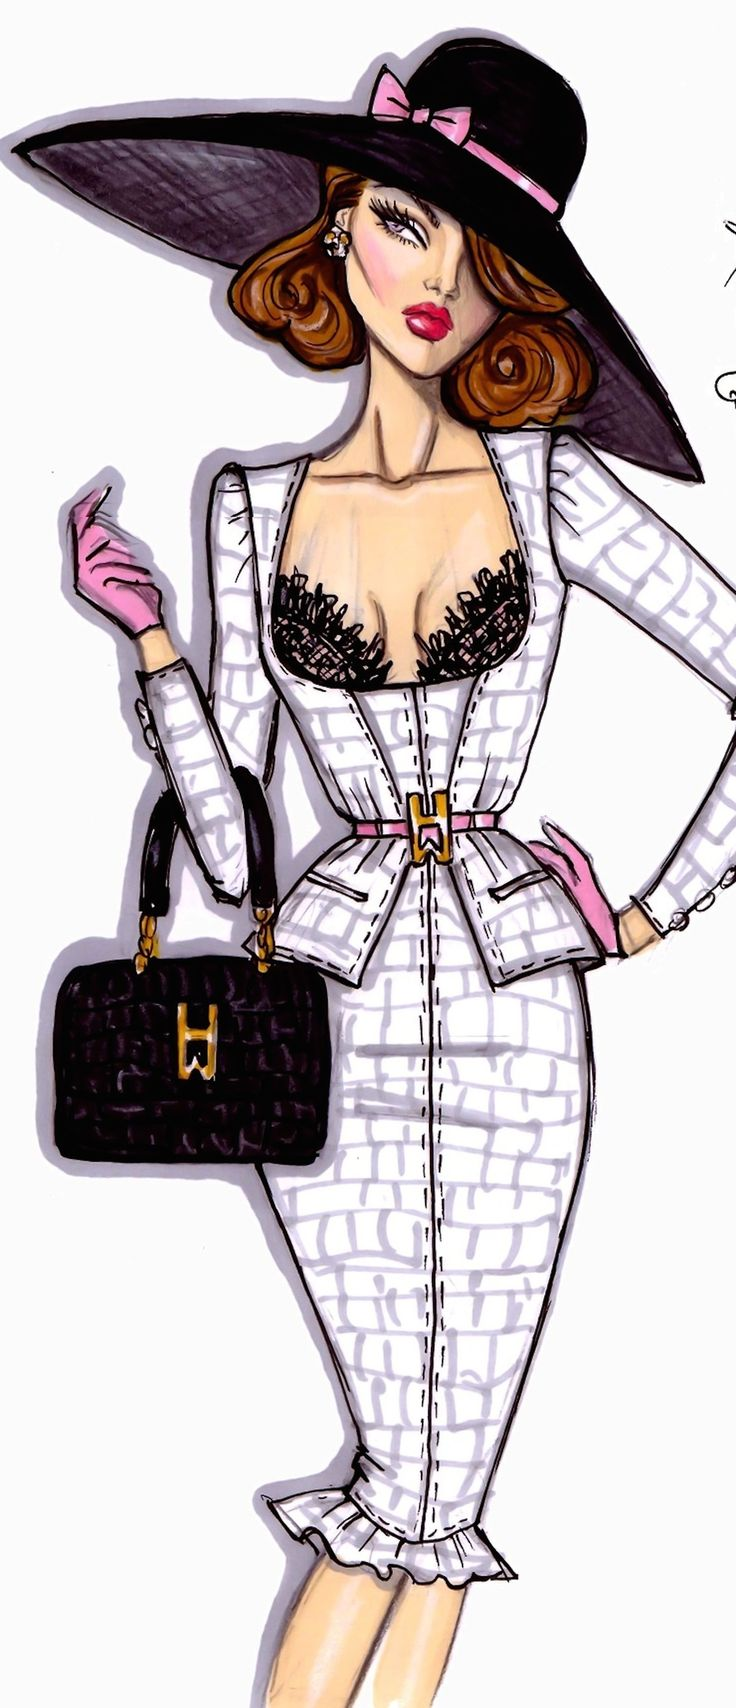 hayden williams-touch of luxury